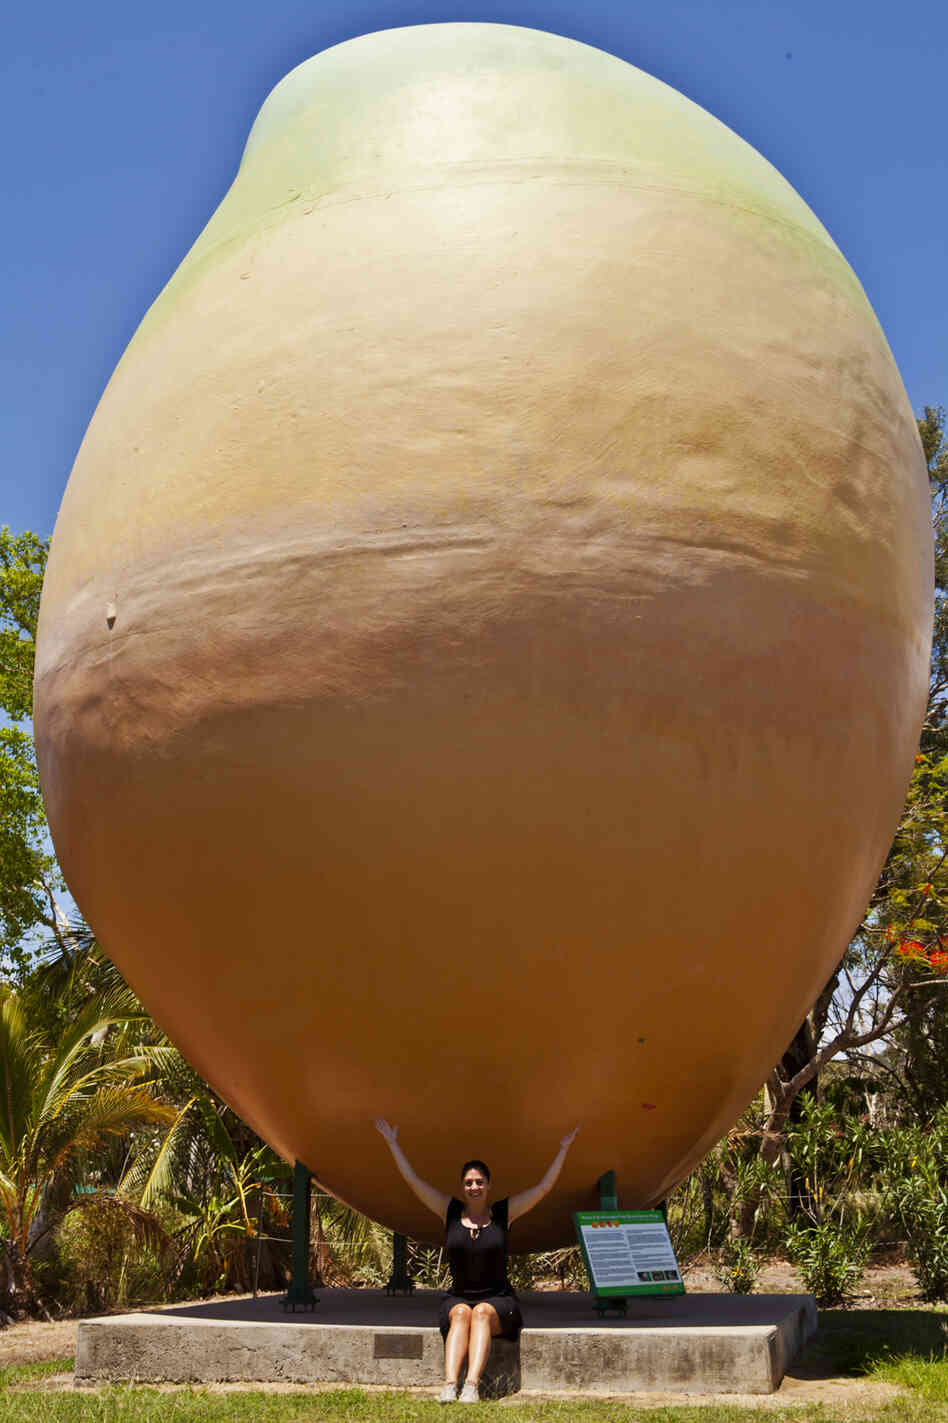 The Big Mango in Bowen, Australia, seen here in 2011, disappeared overnight, surprising people who live near the 33-foot-tall sculpture.